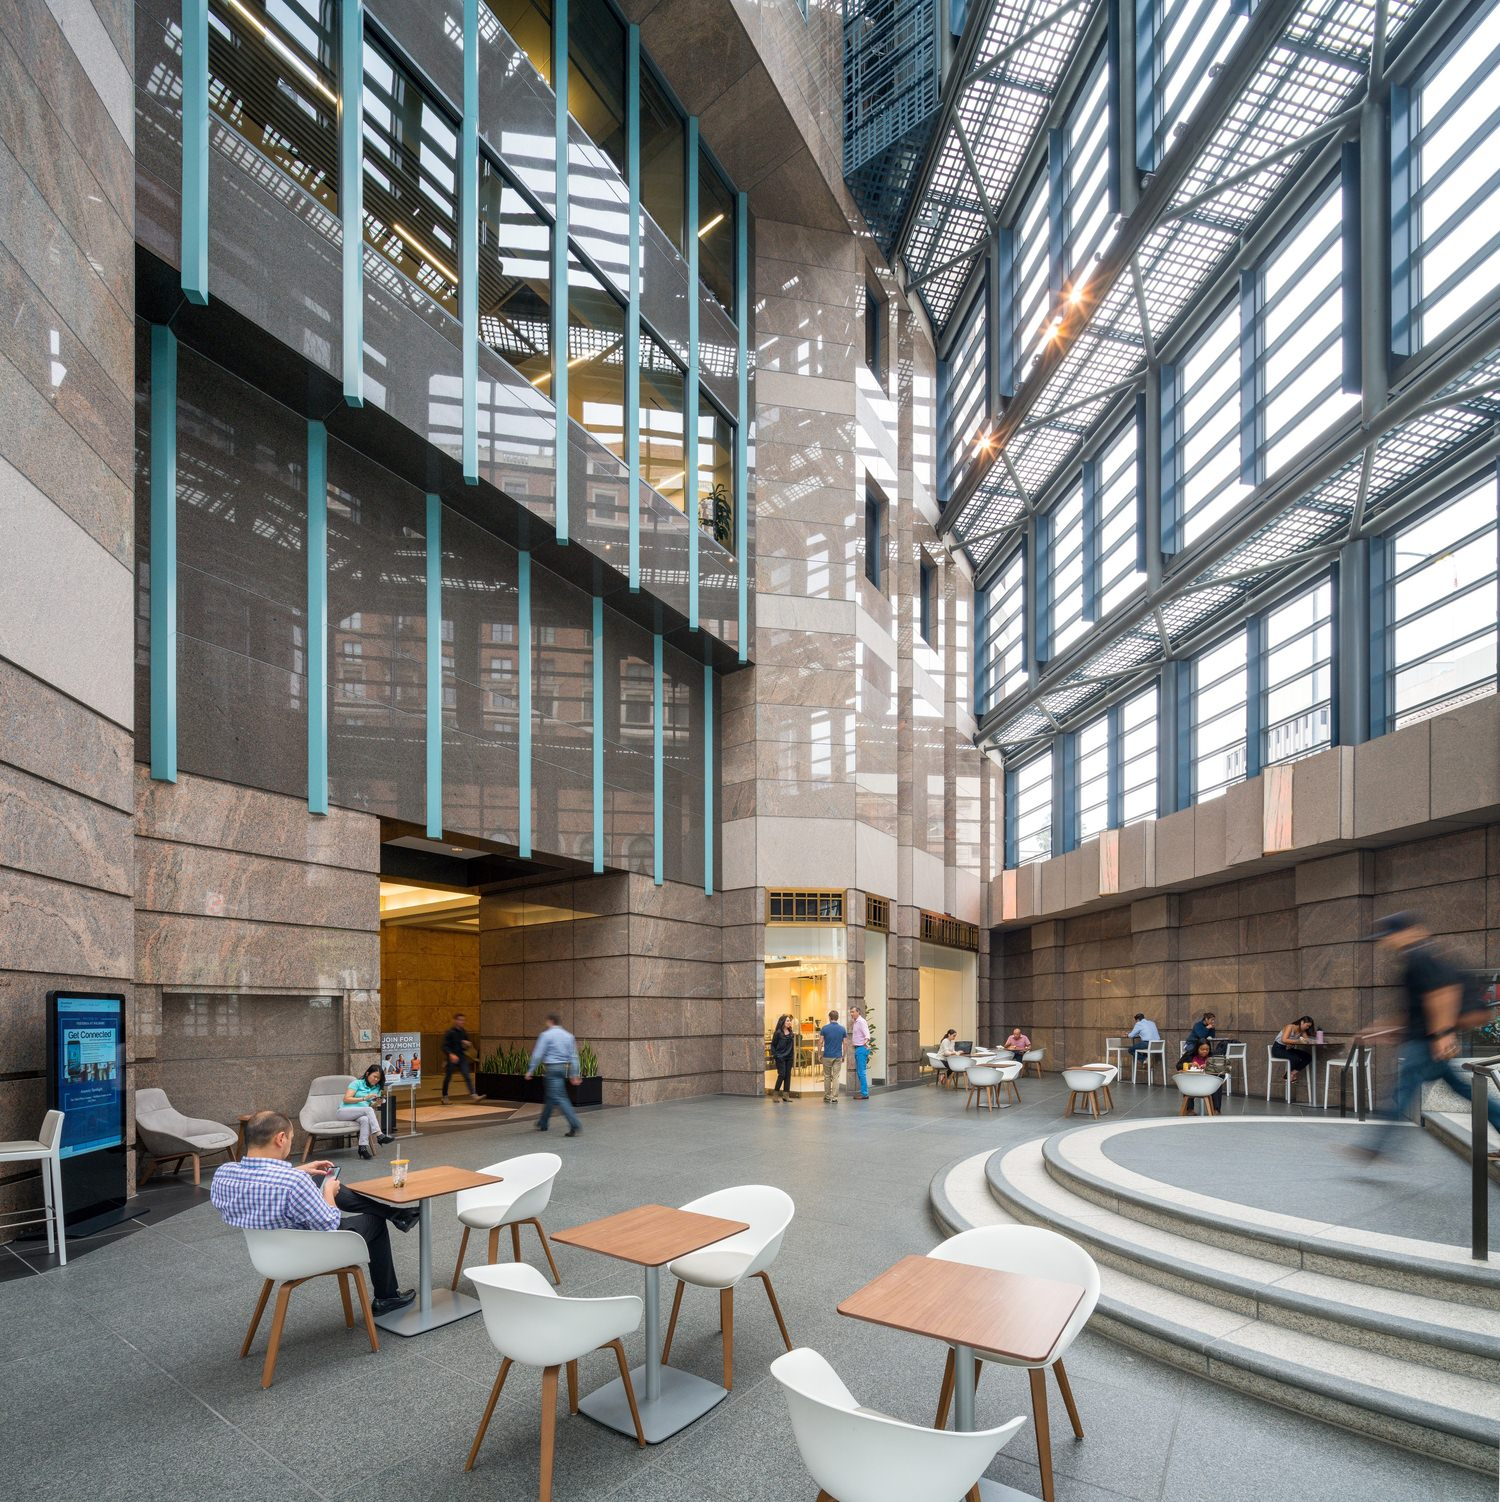 A large lobby that has people sitting and walking along the area within the big building.